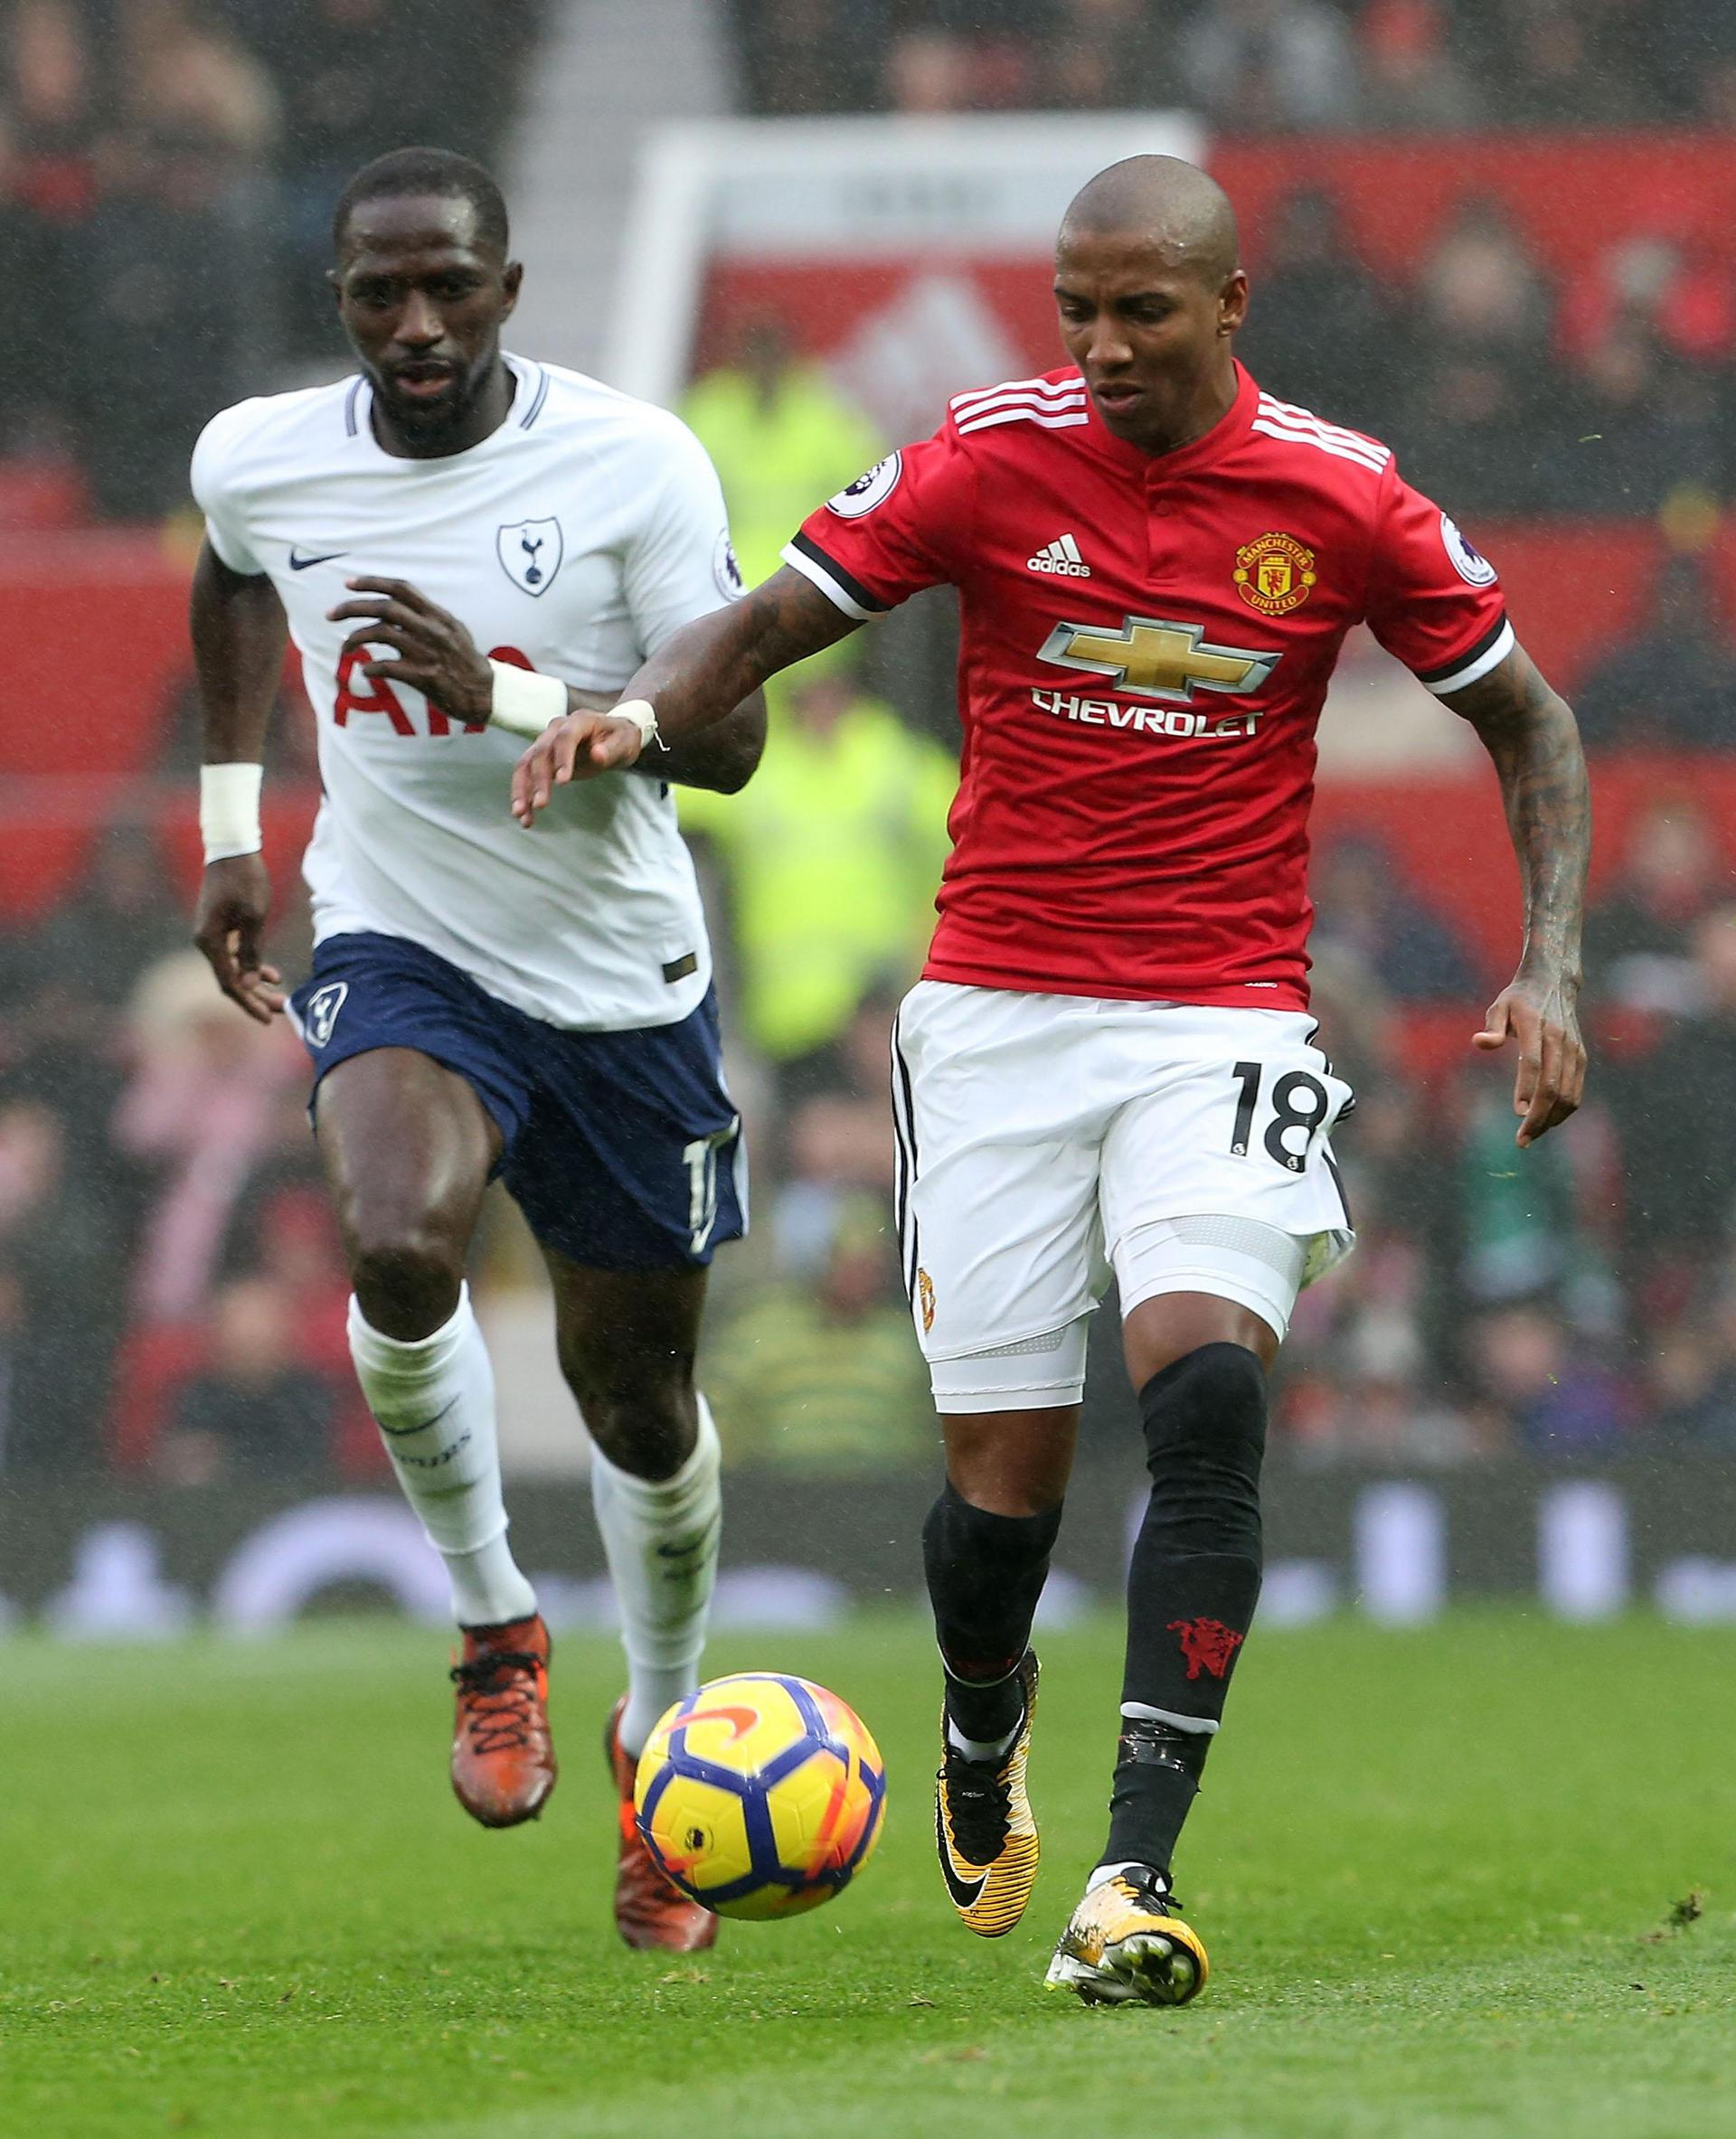 Ashley Young in action against Tottenham